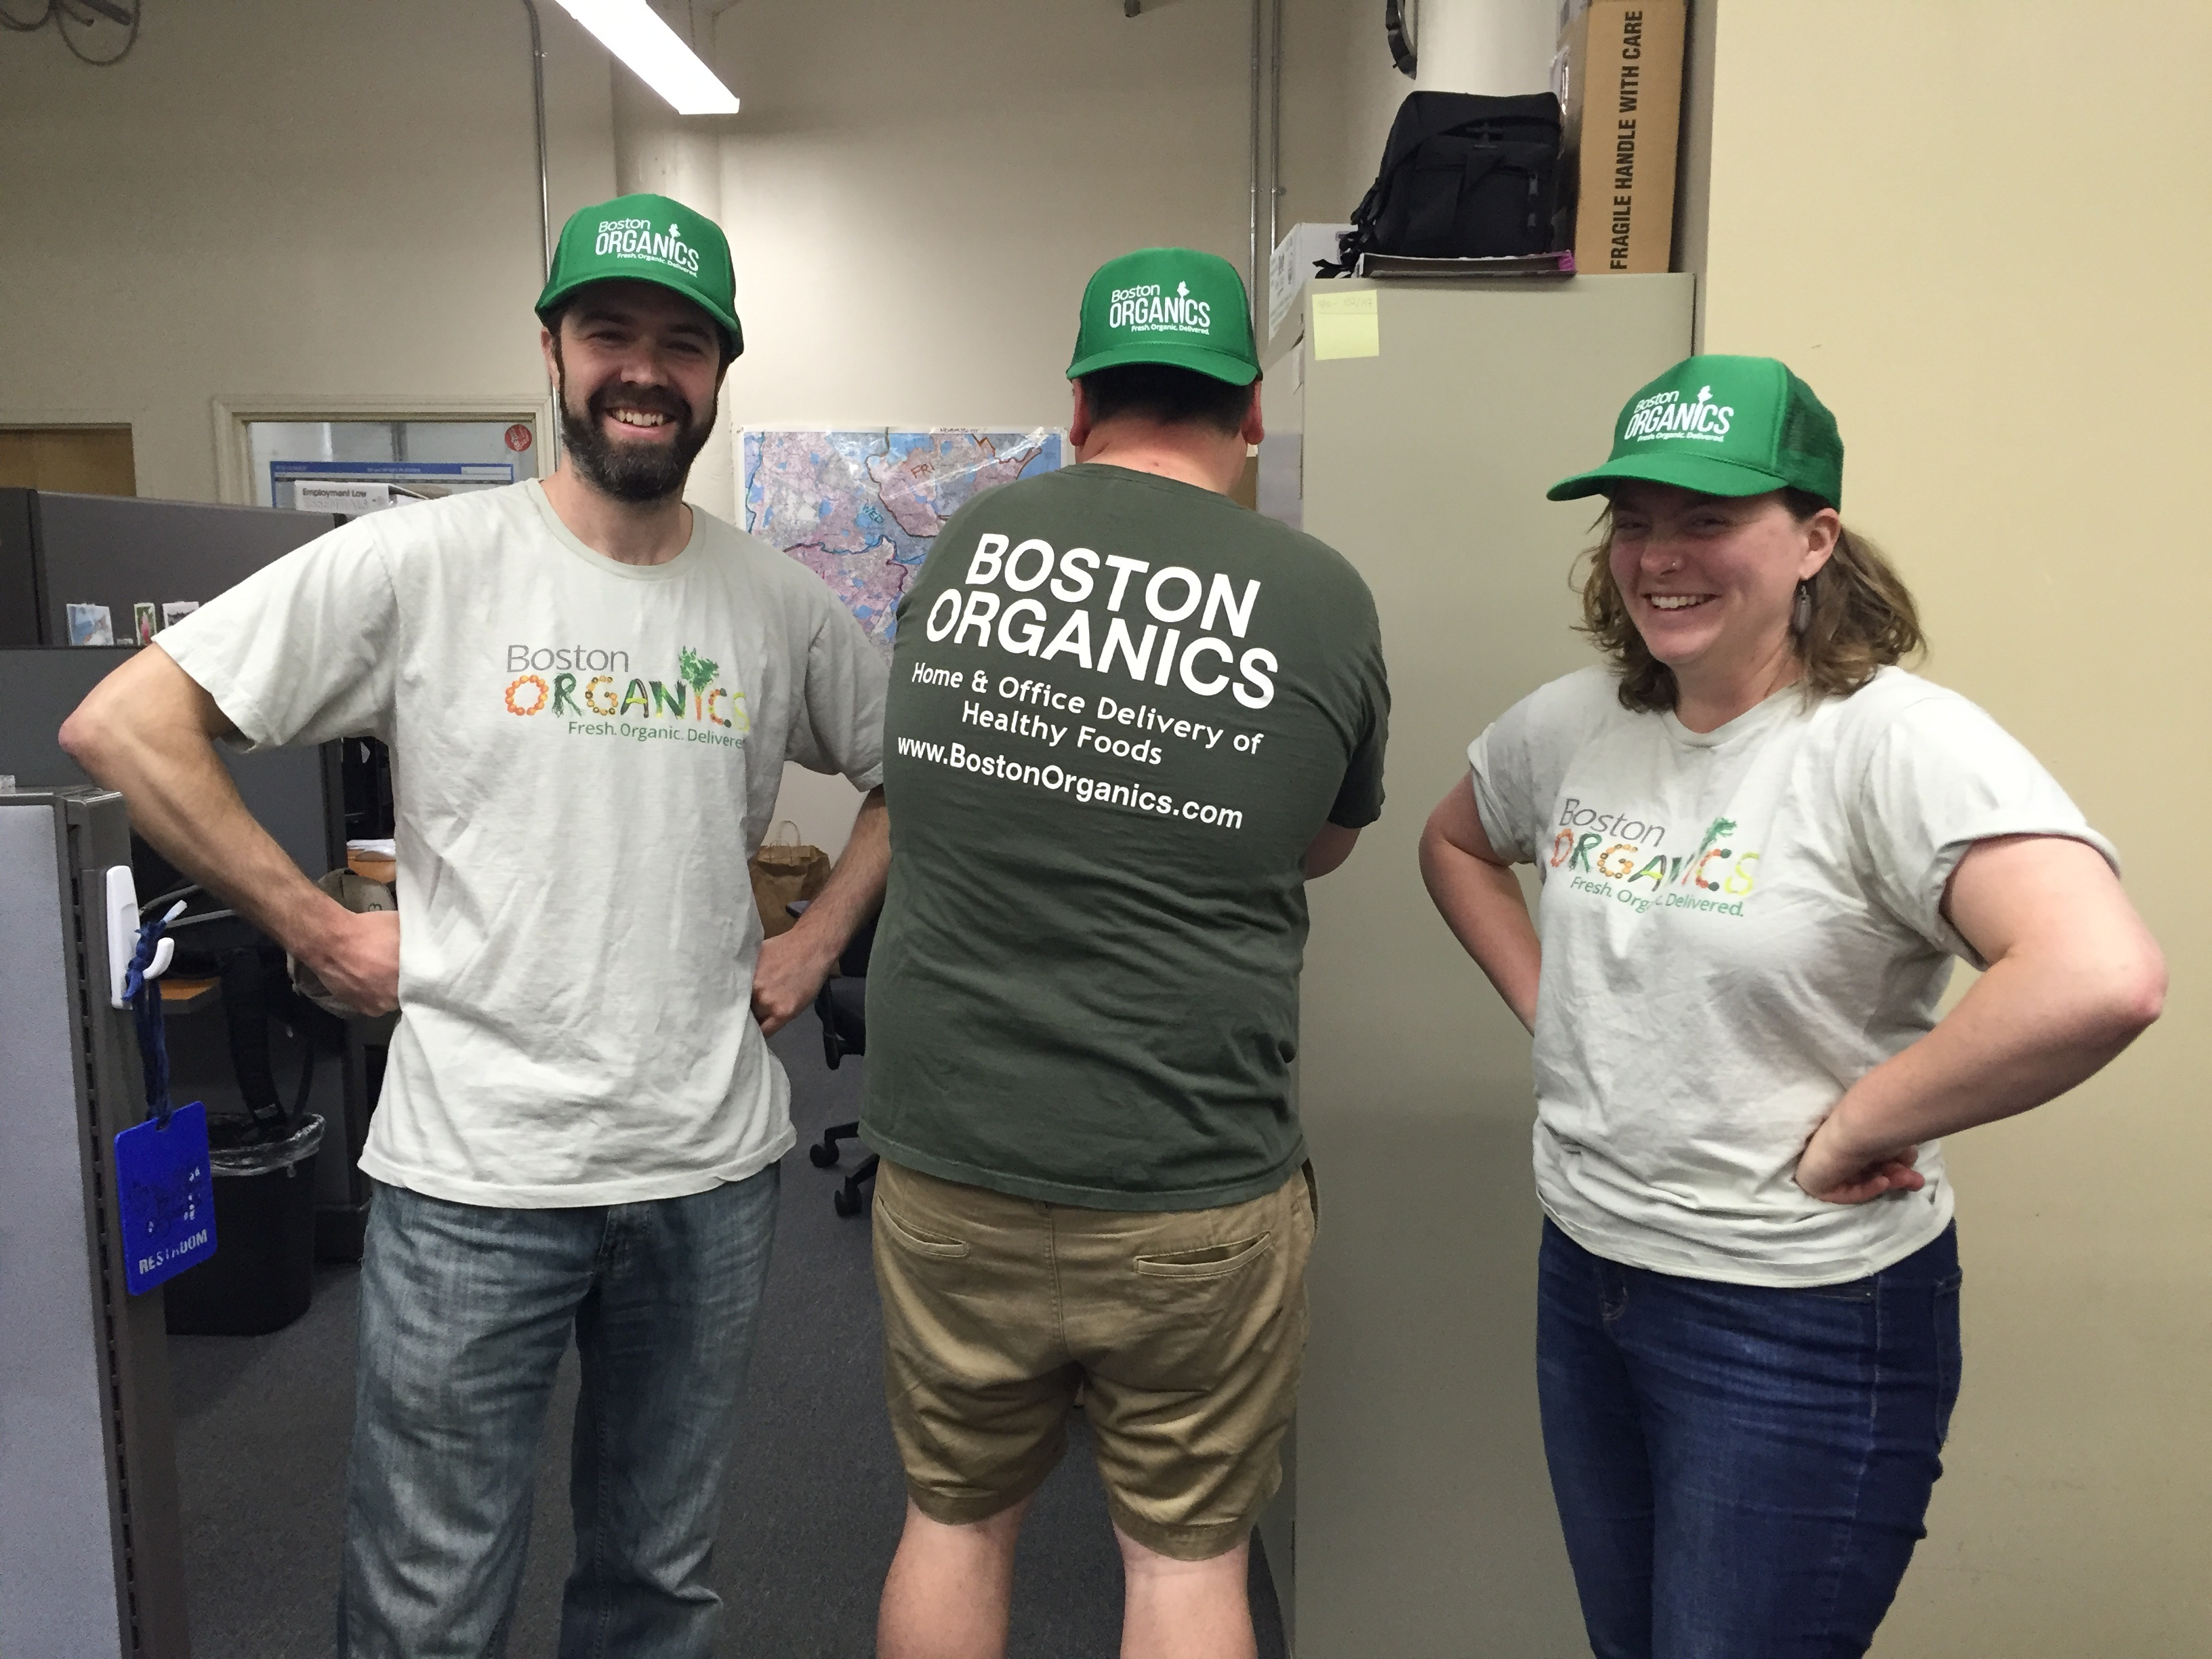 Team Boston Organics